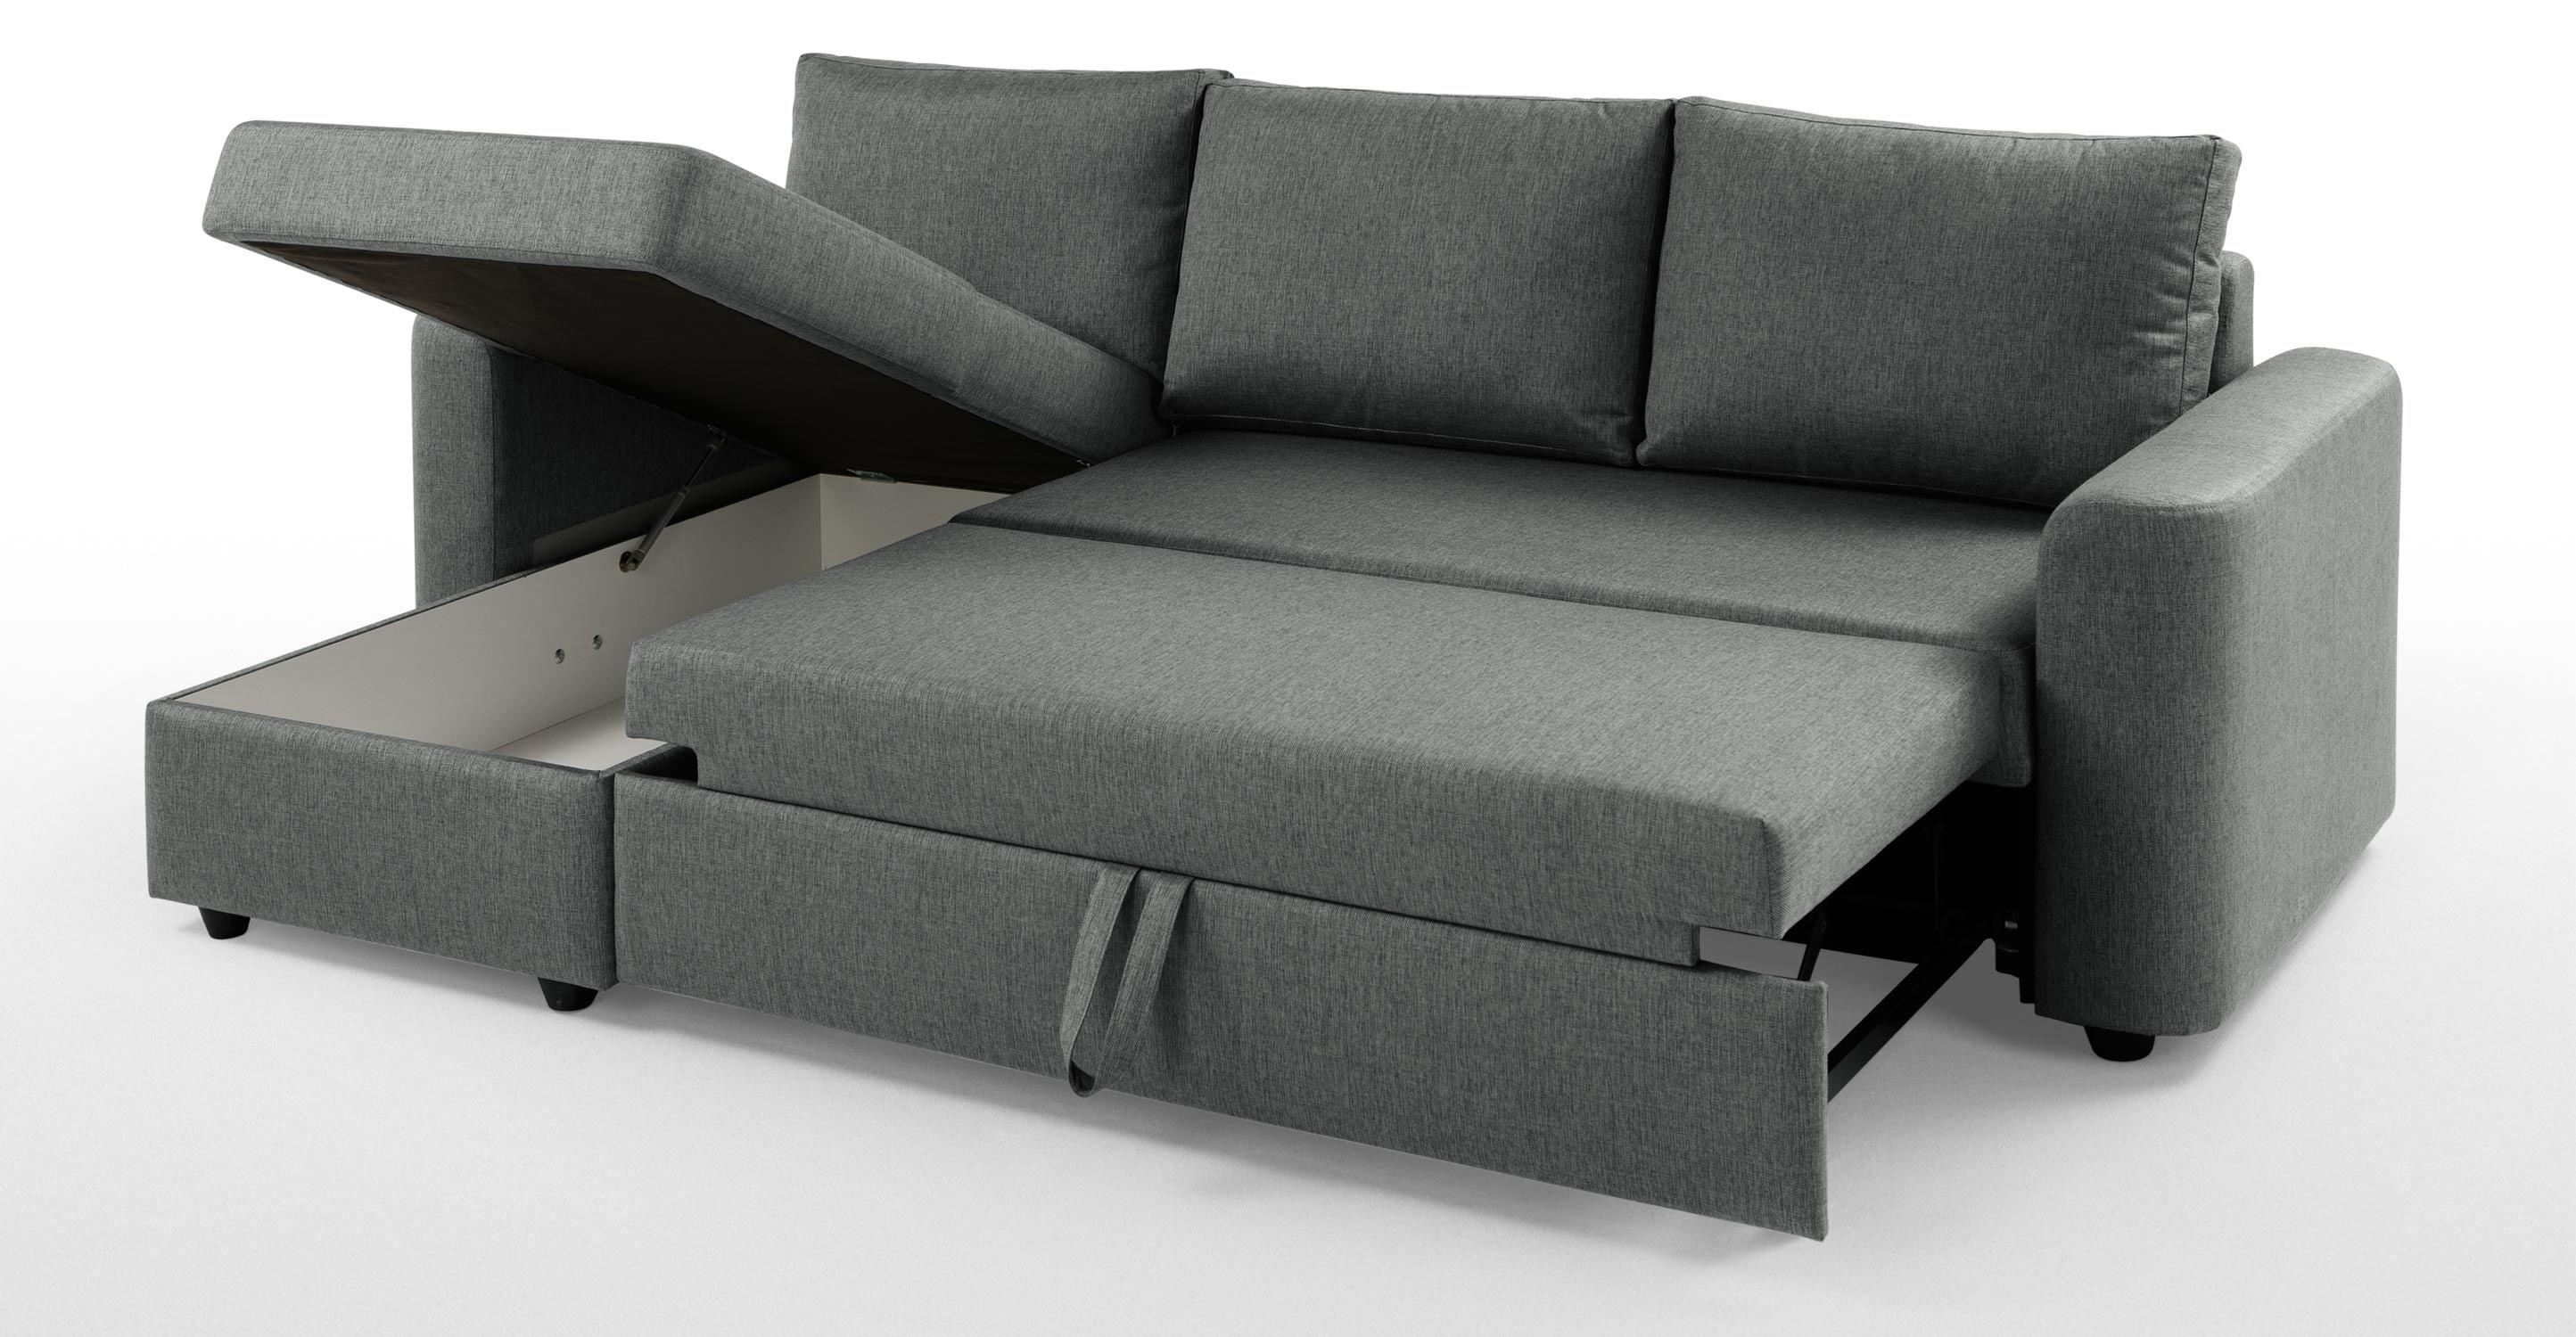 Chaise Sofa Bed With Storage.  (Image 2 of 20)